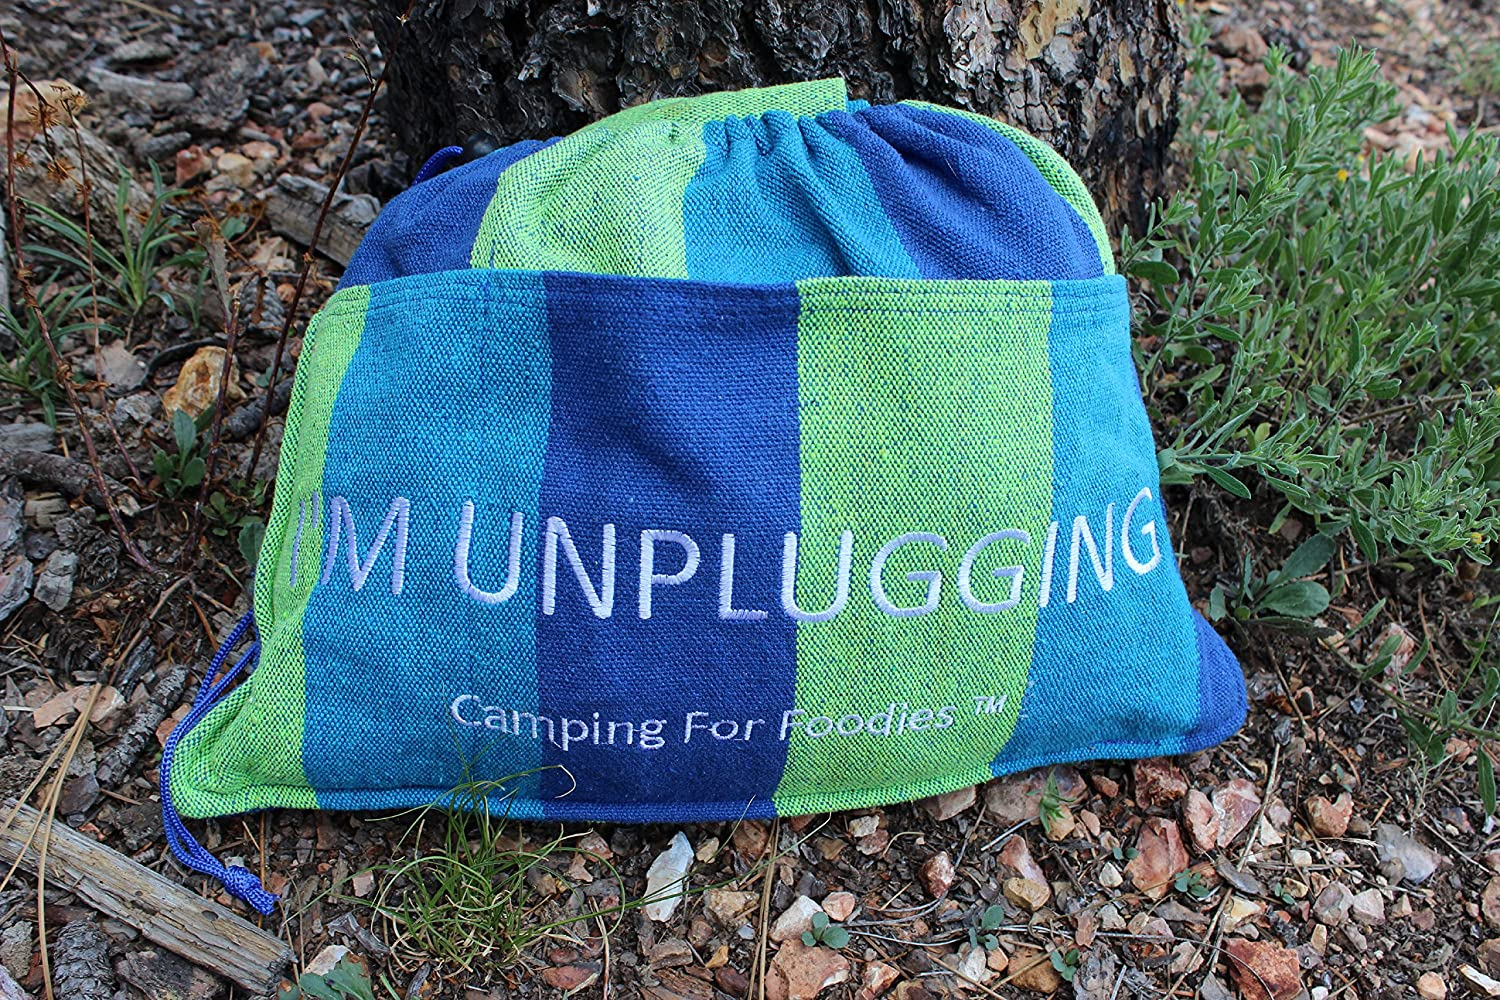 Folds Into Carry Bag made our list of unique camping gifts for men which are some of the most cool camping gifts for special occasions and the CampingForFoodies hand selected best camping gifts for him are awesome for the rest of the family too!